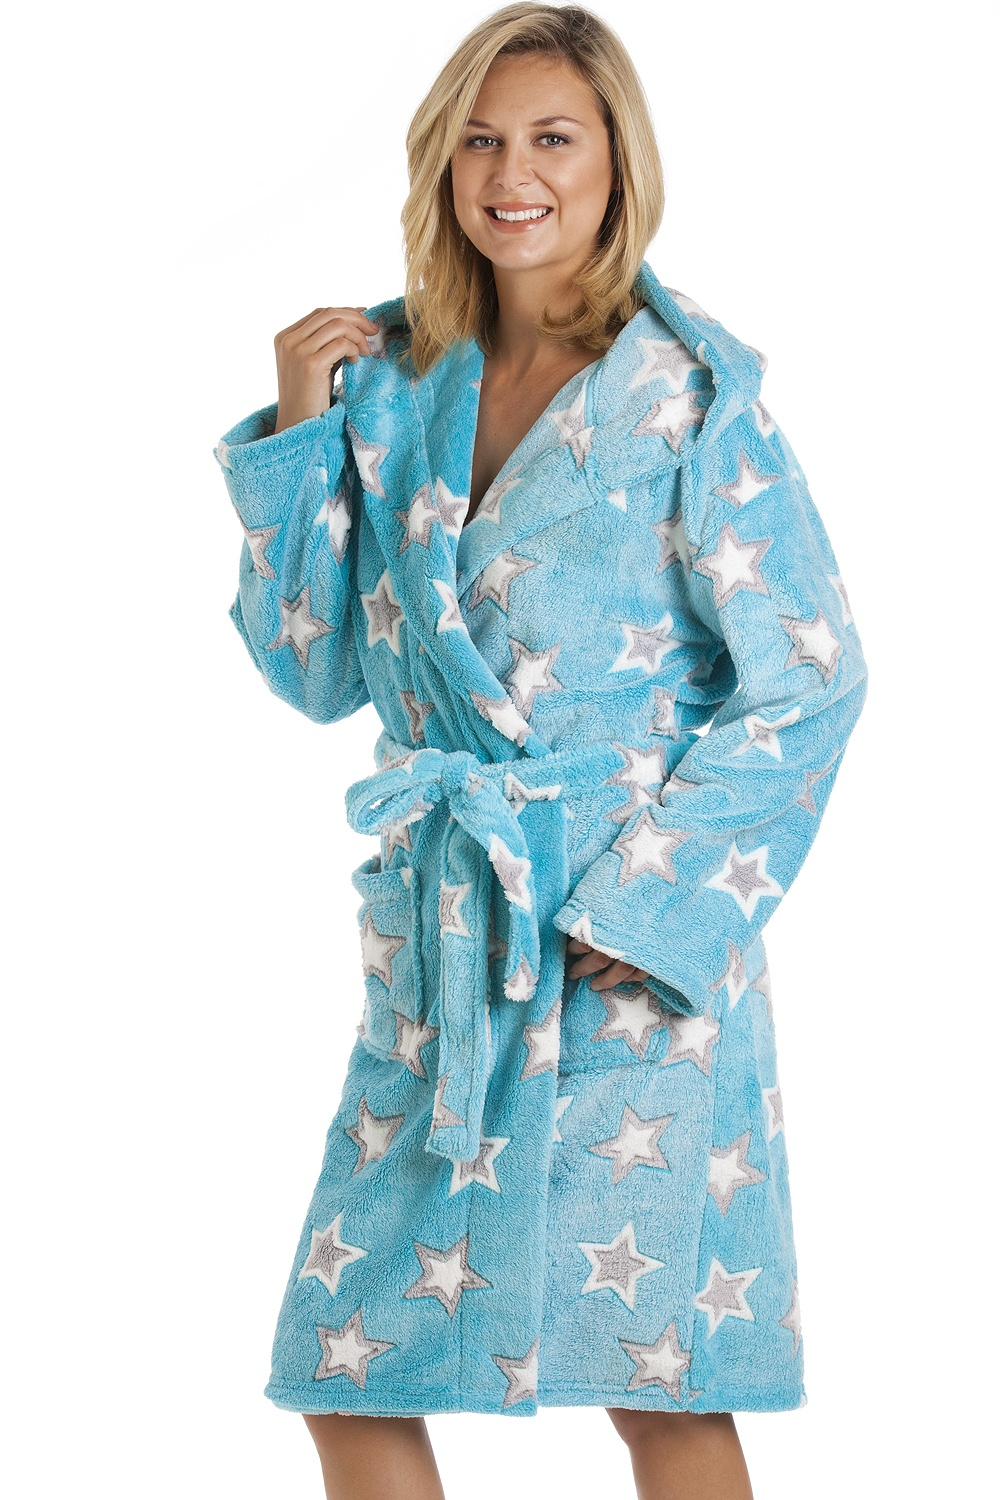 Aqua Blue Supersoft Fleece Star Print Bathrobe